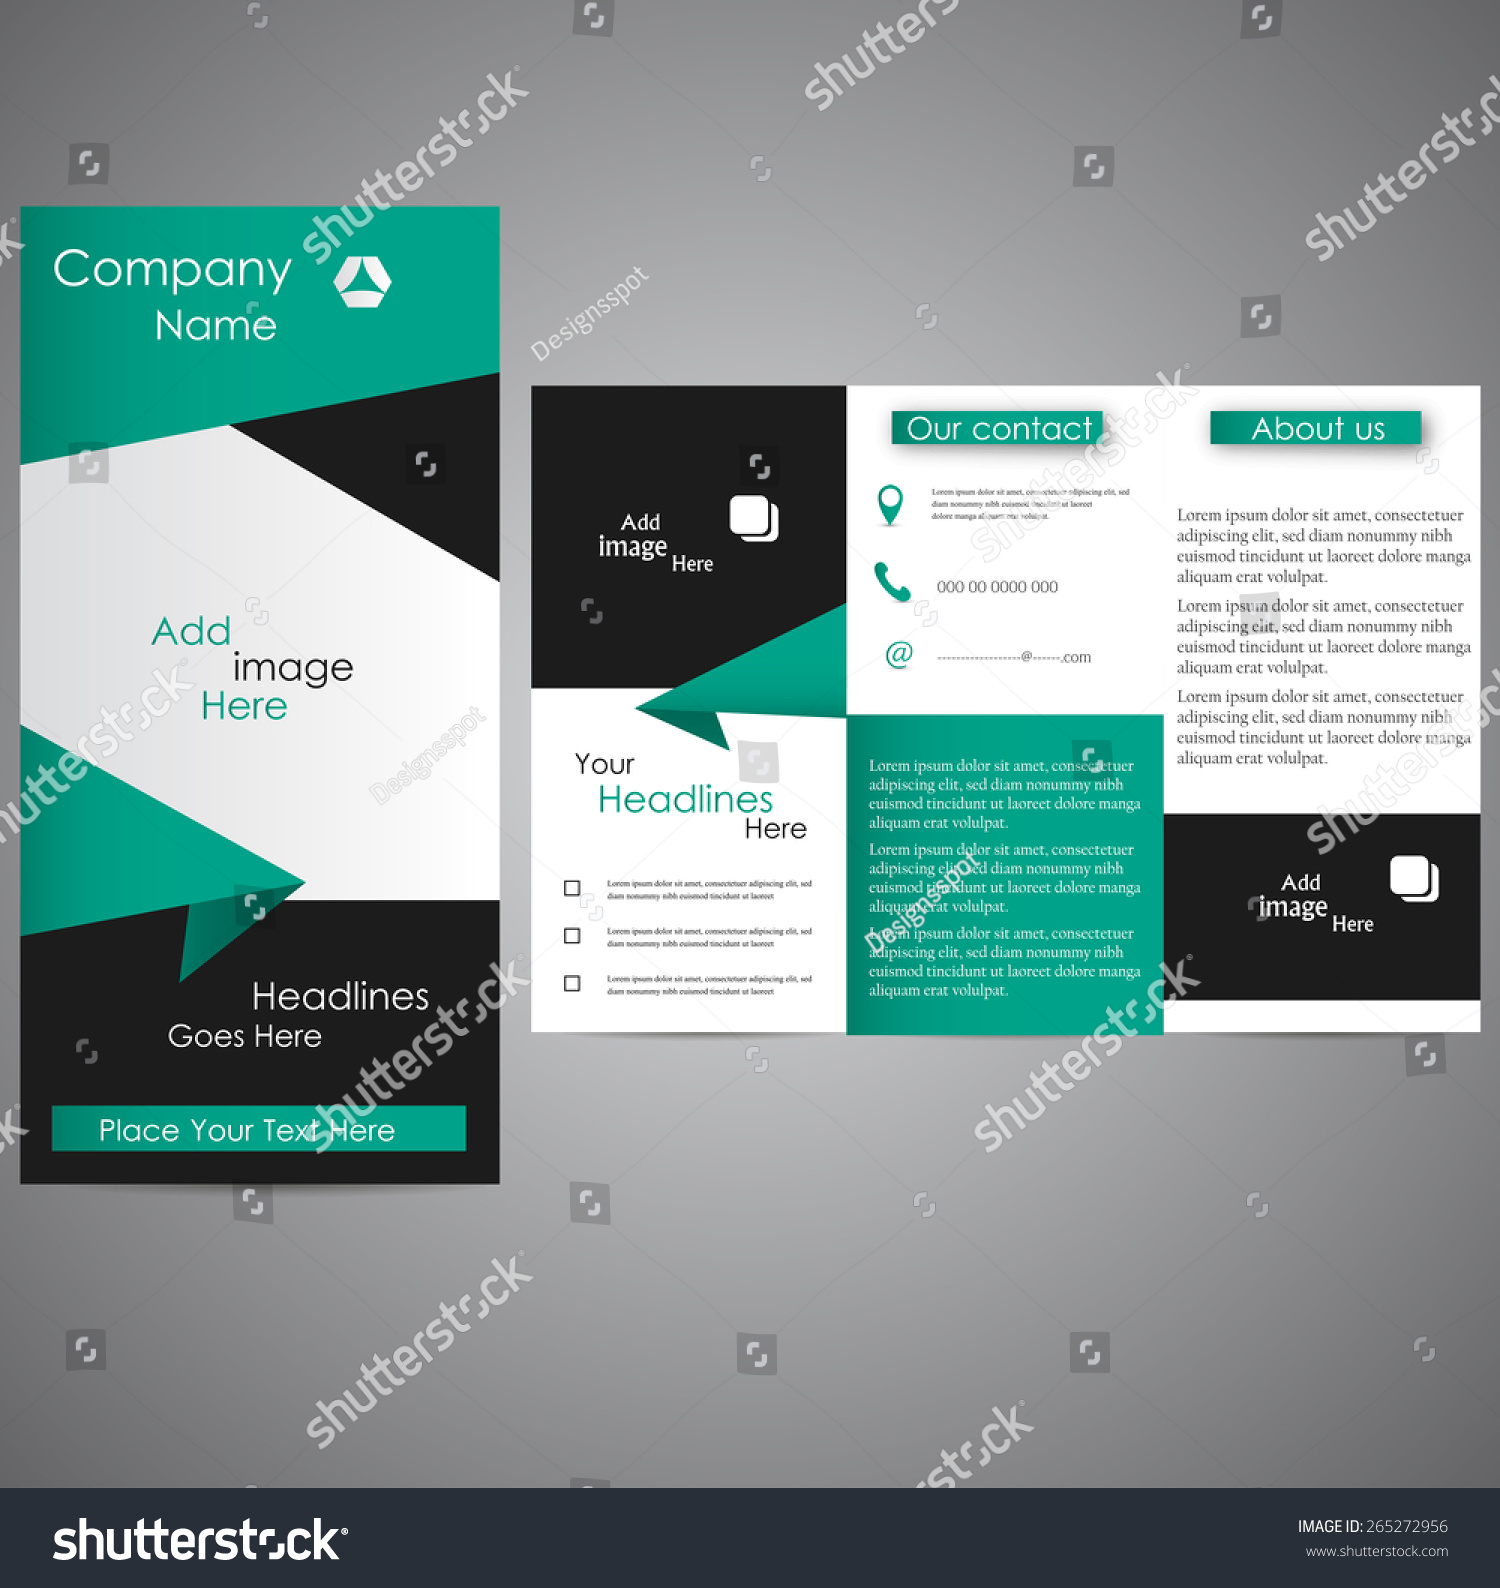 royalty professional business three fold flyer  professional business three fold flyer template corporate brochure or cover design can be use